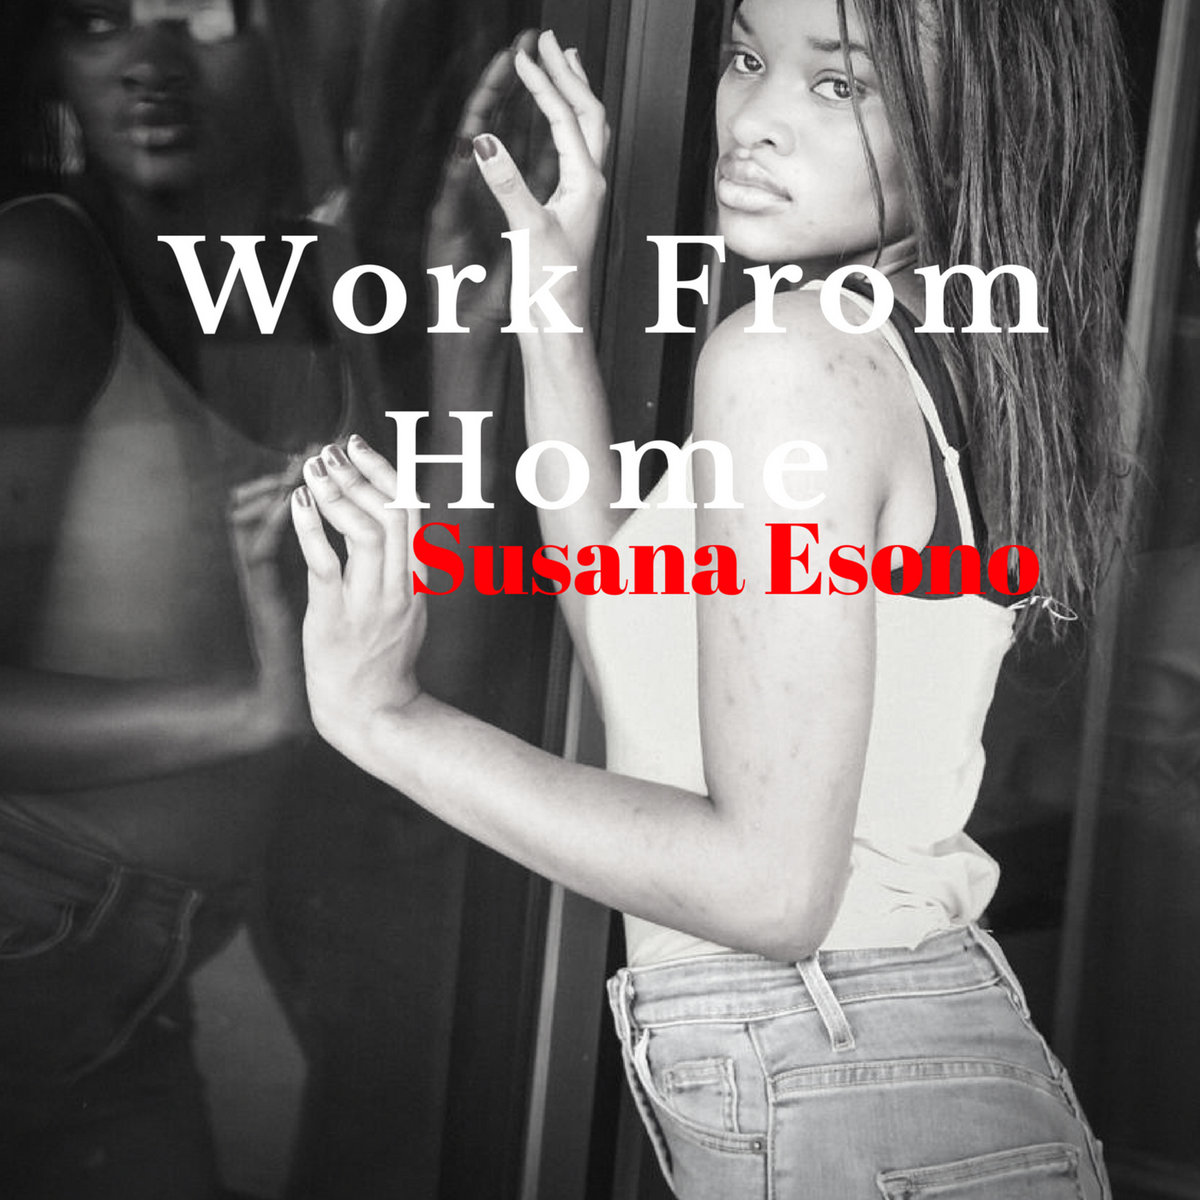 Work From home (Single) by Susana Esono